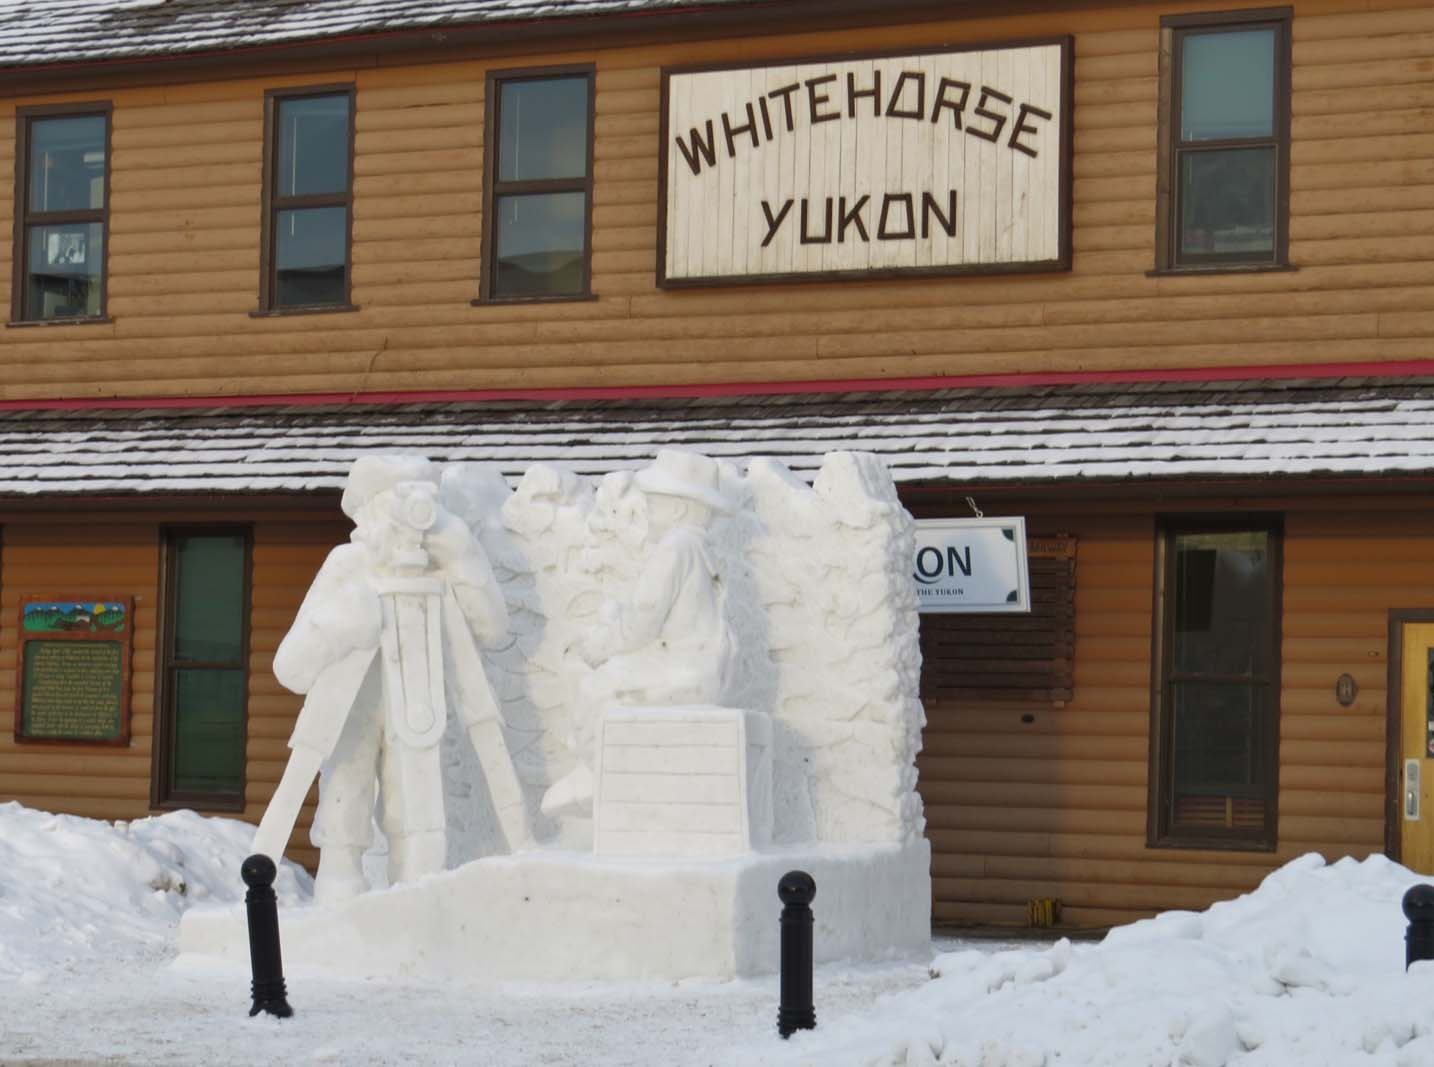 Carved ice sculpture in front of wooden building